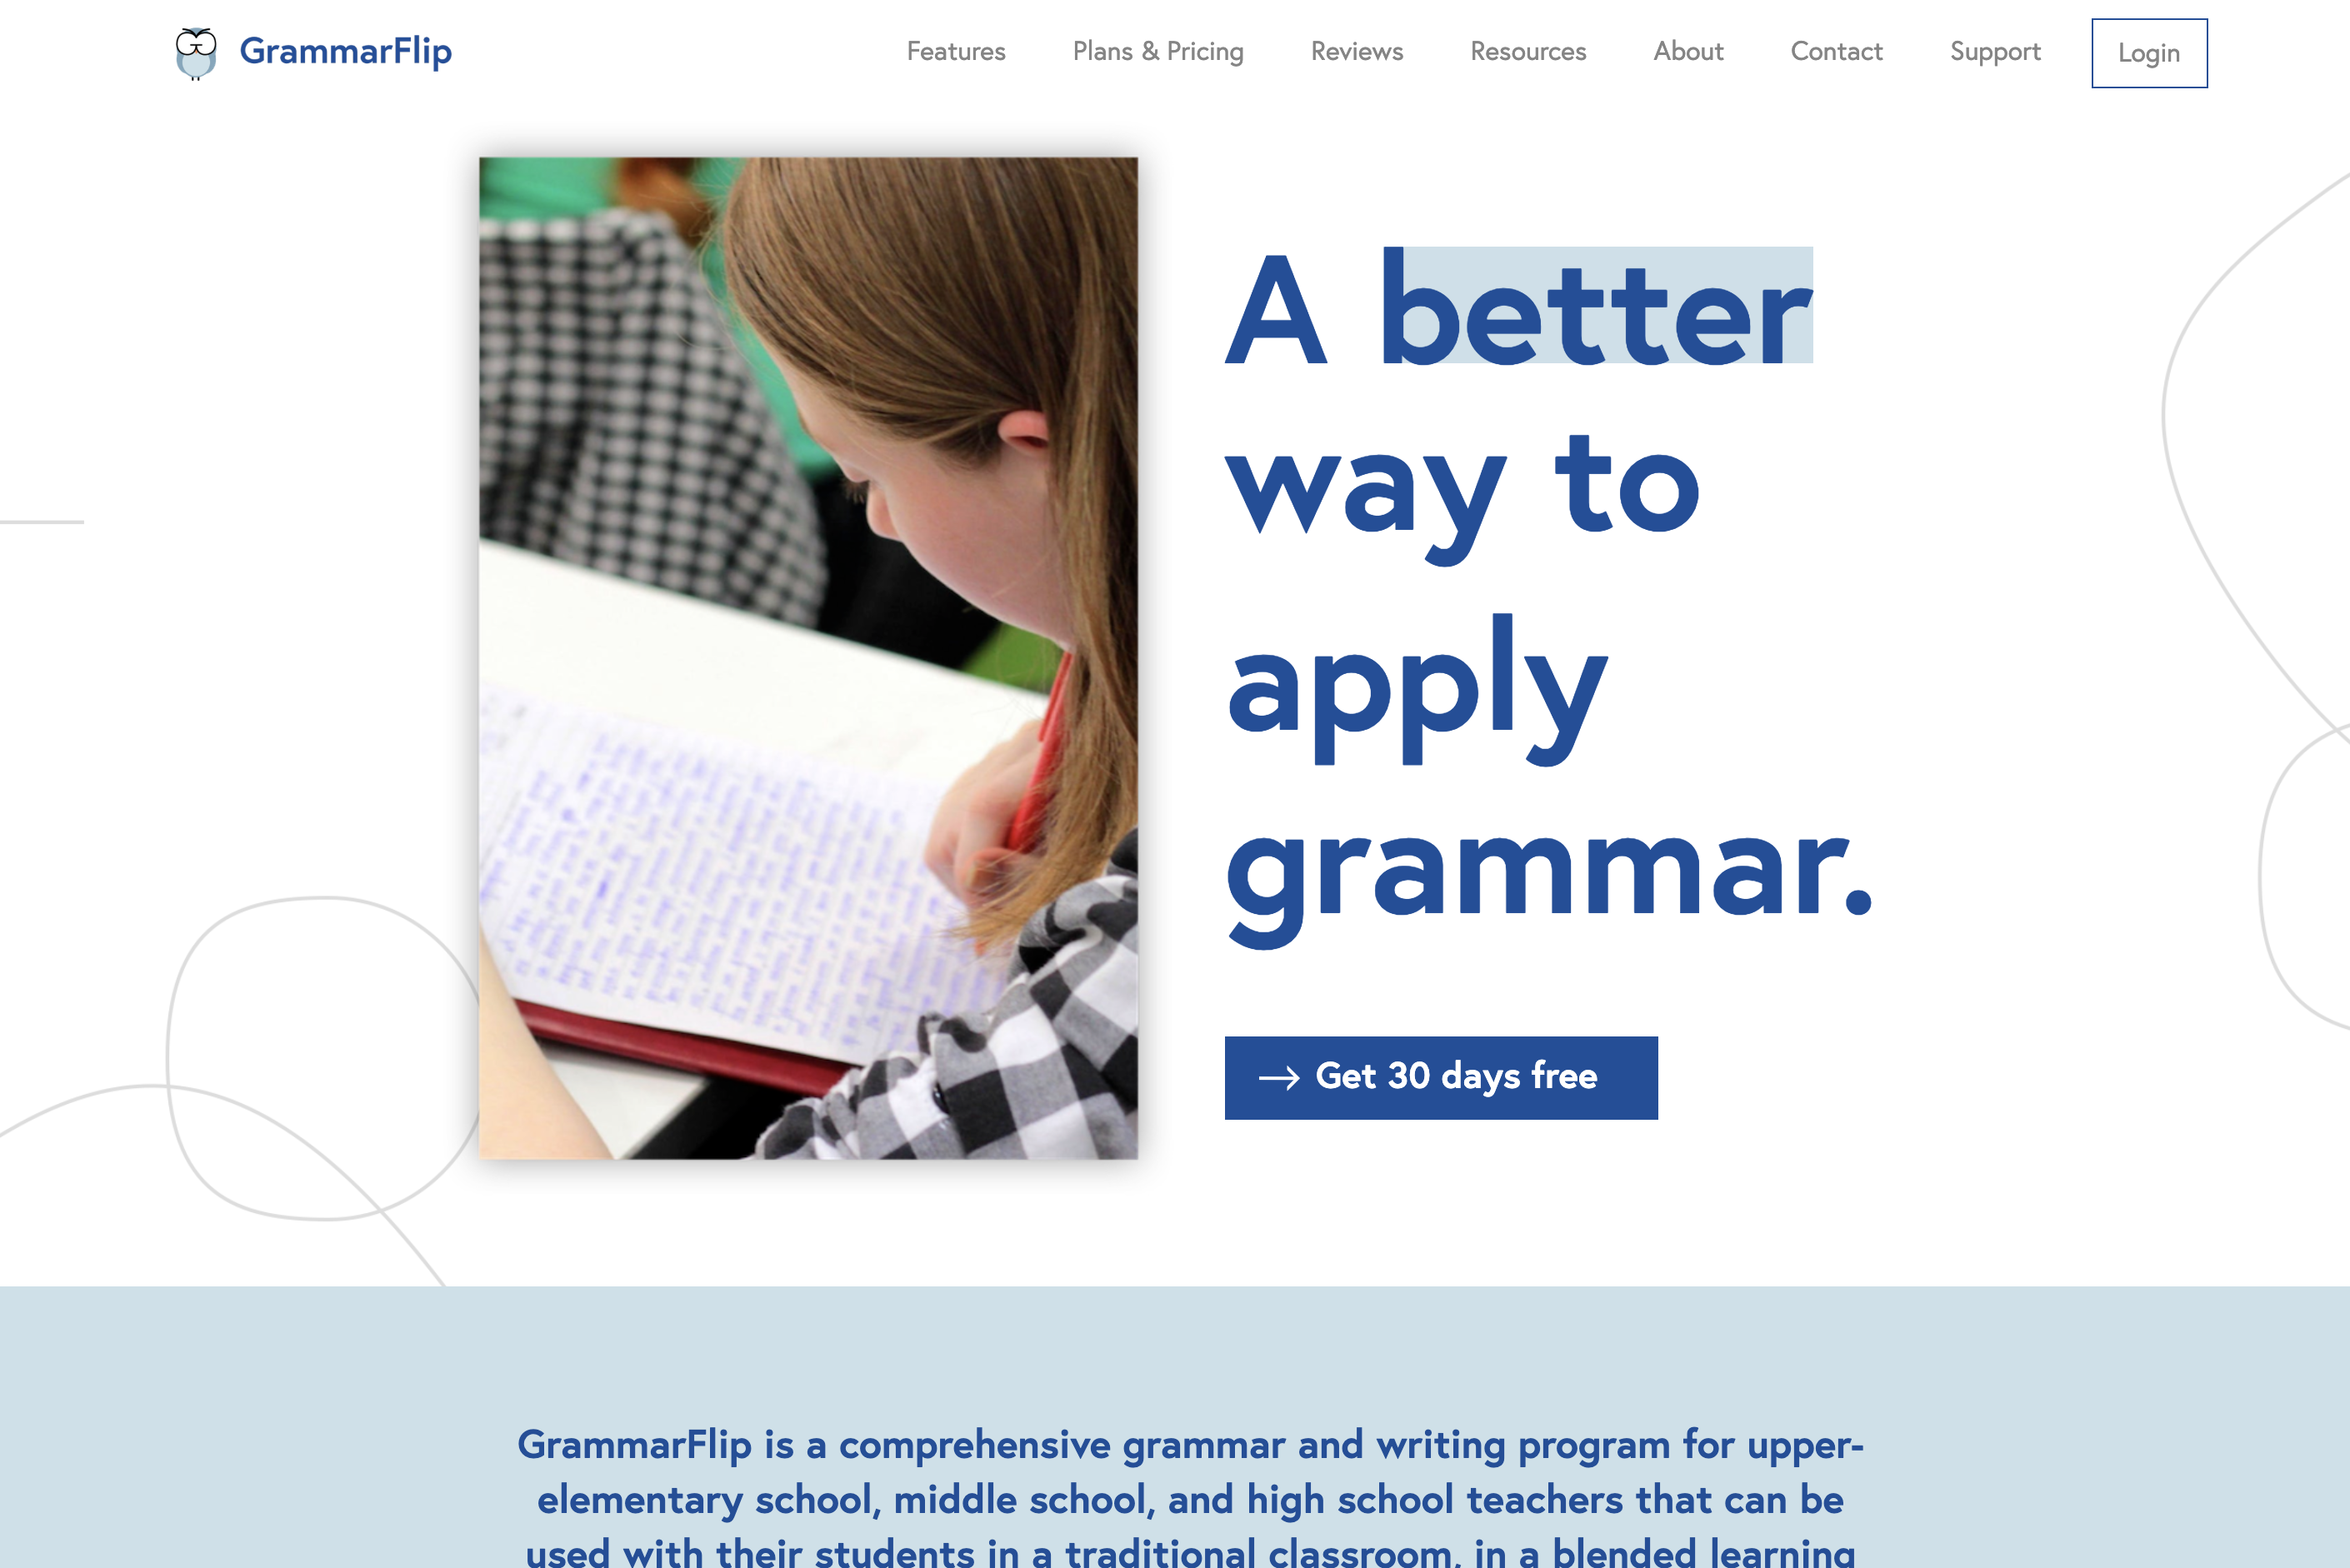 GrammarFlip: The Interactive Online Grammar and Writing Program